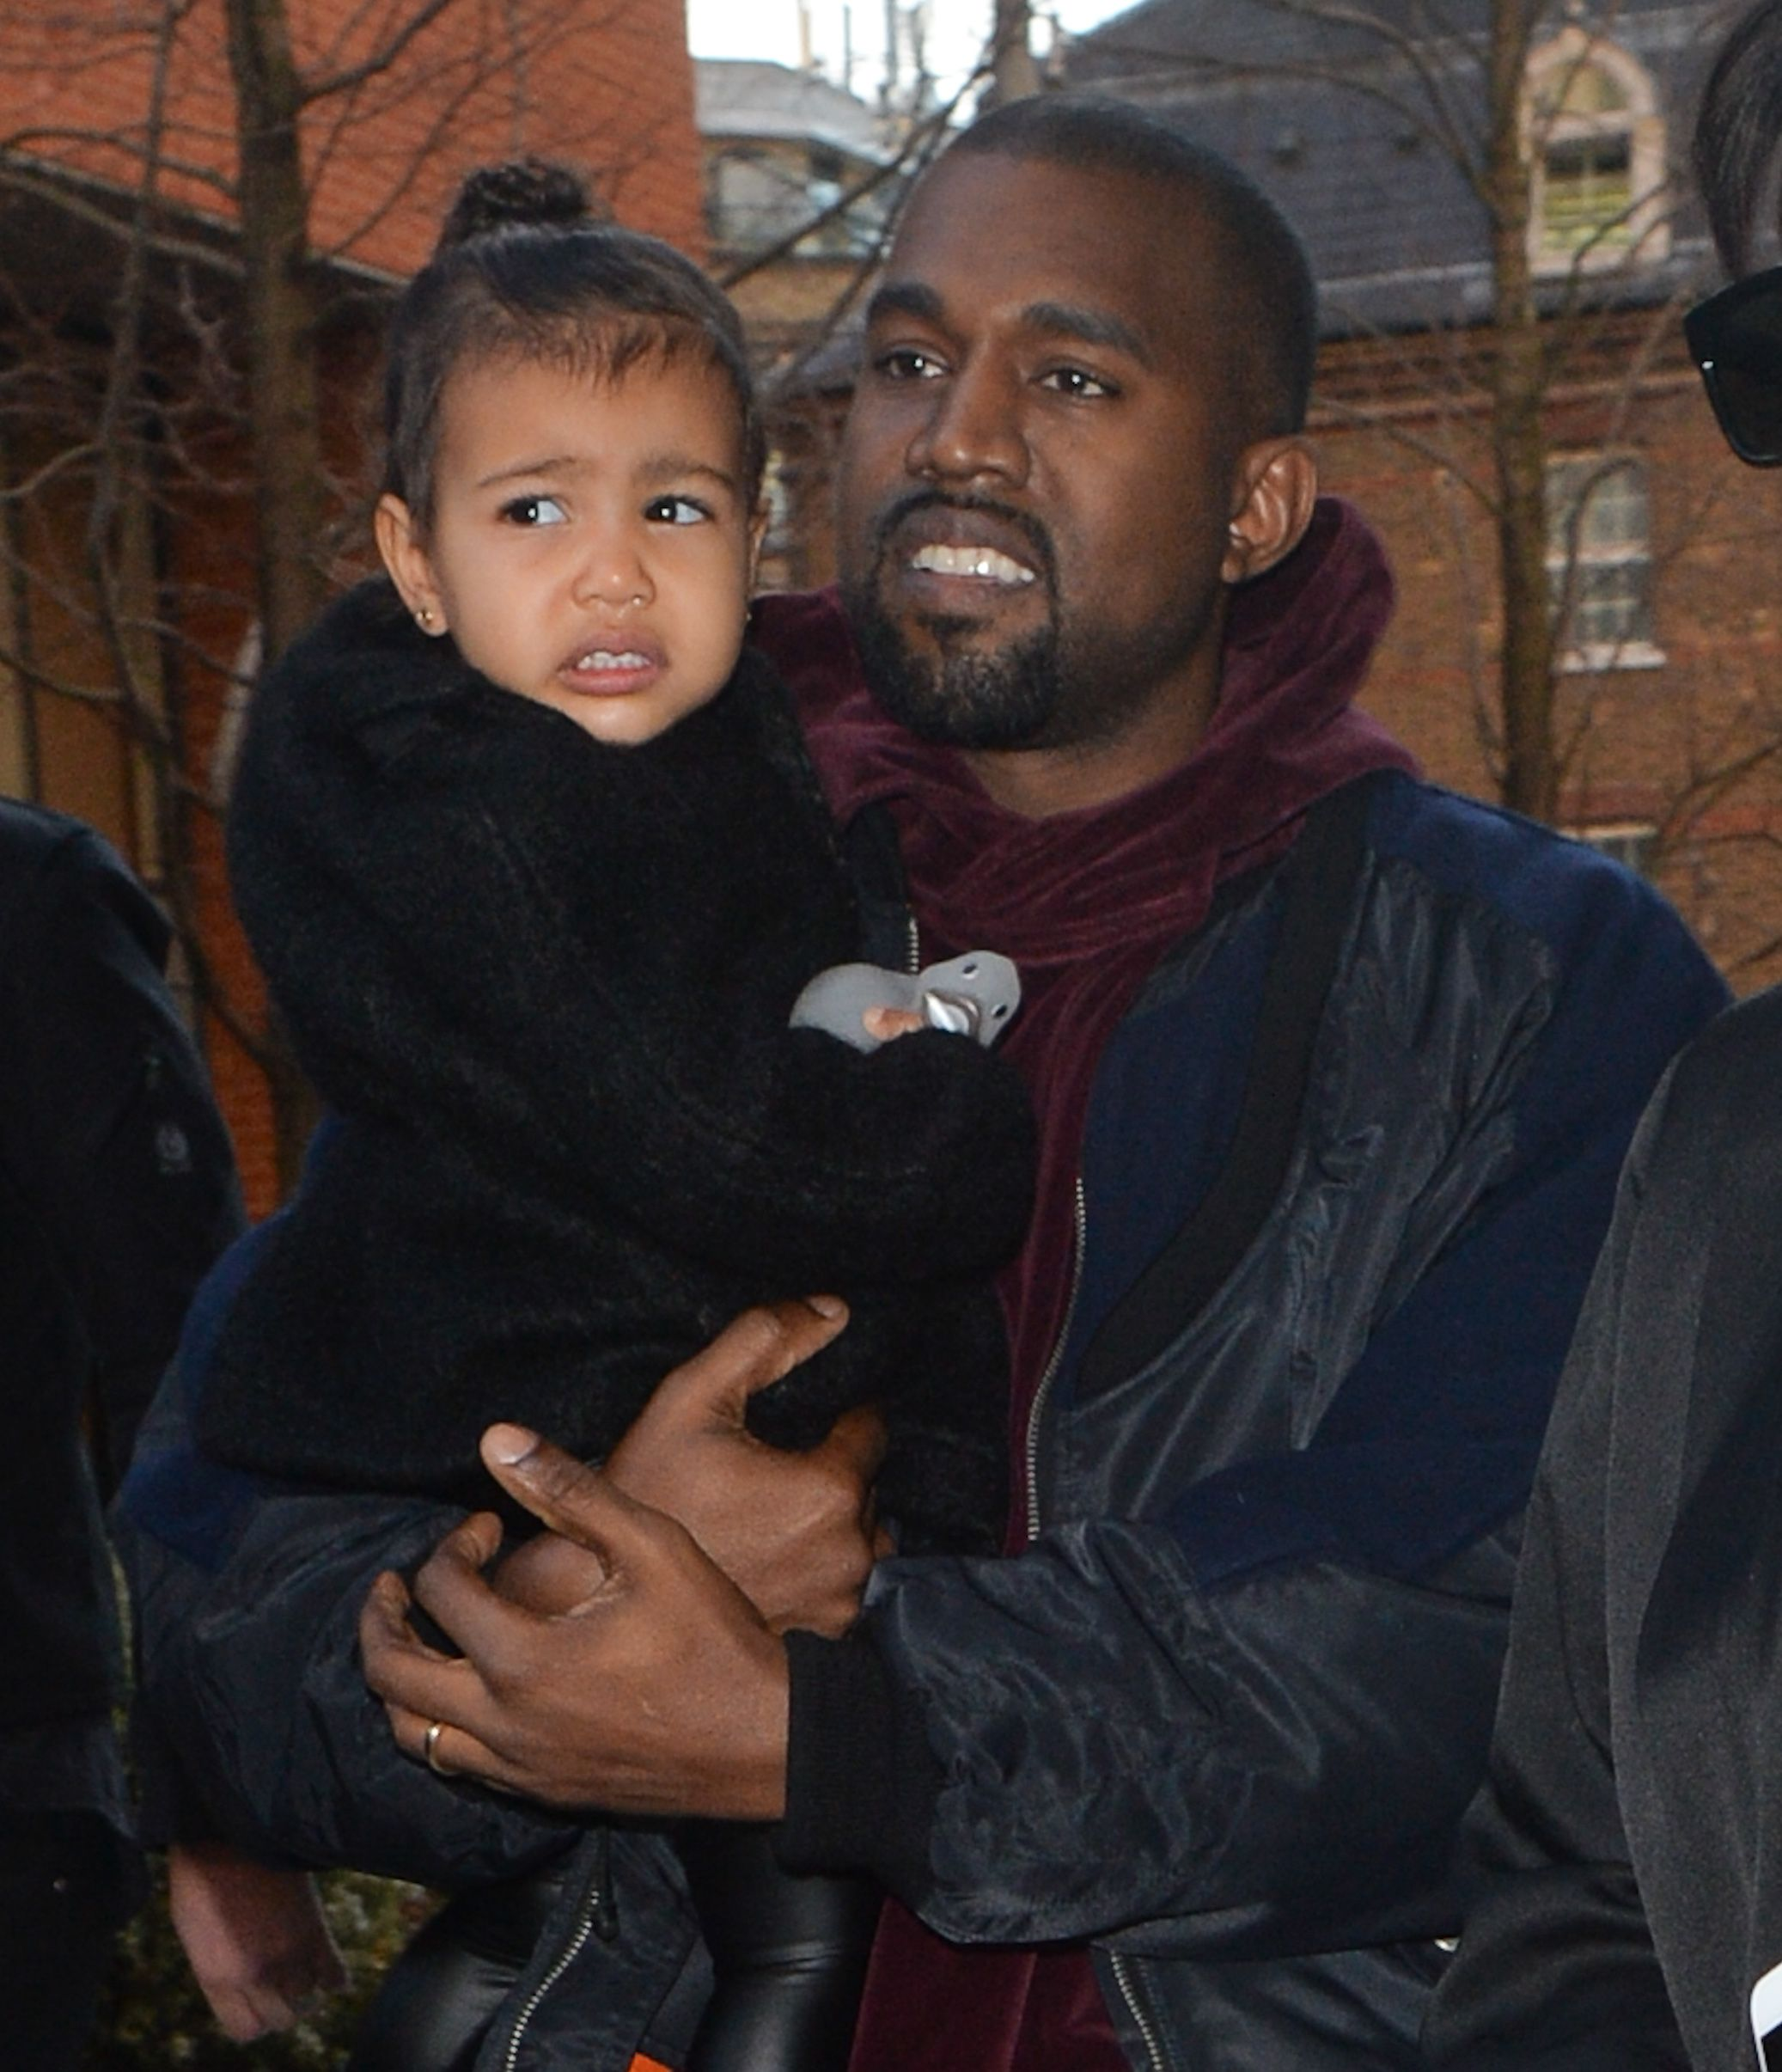 Kanye West with baby North at a play centre in Battersea / Getty Images